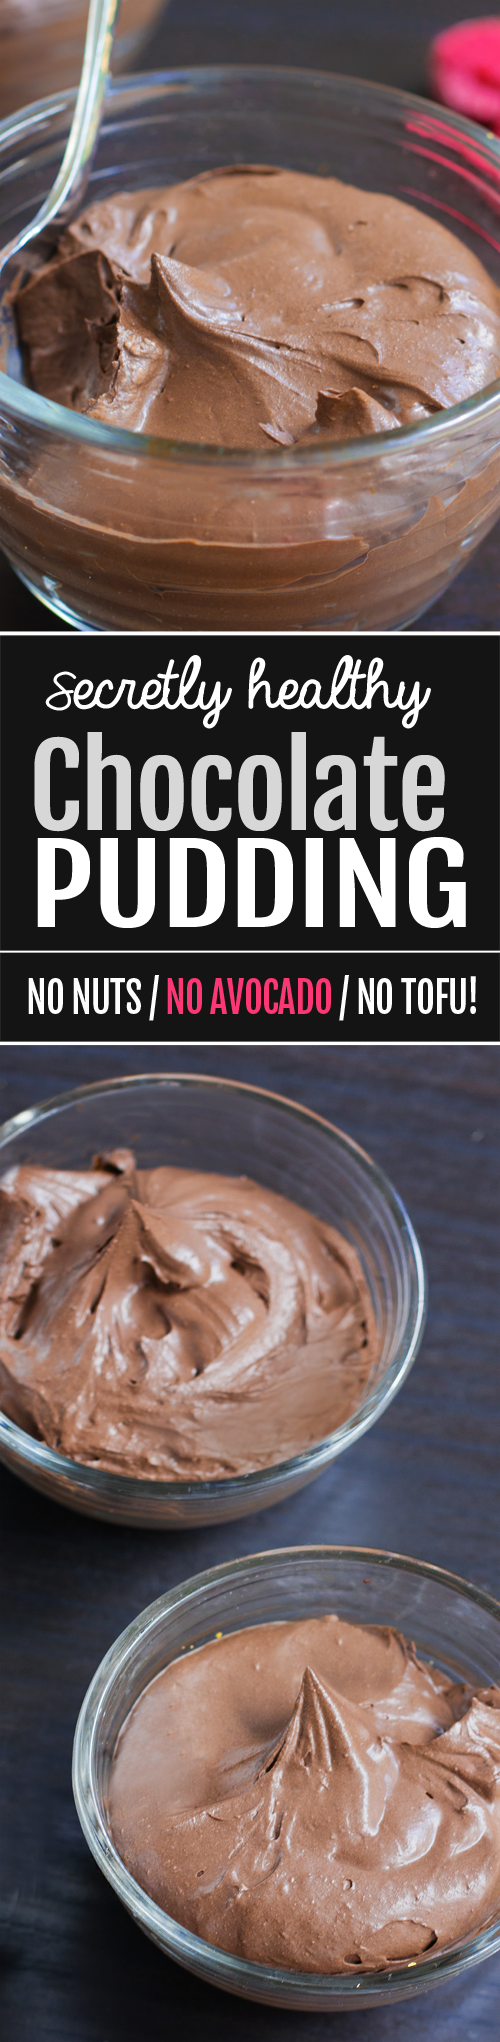 Healthy Chocolate Pudding, with NO tofu, no avocado, and the recipe is vegan too